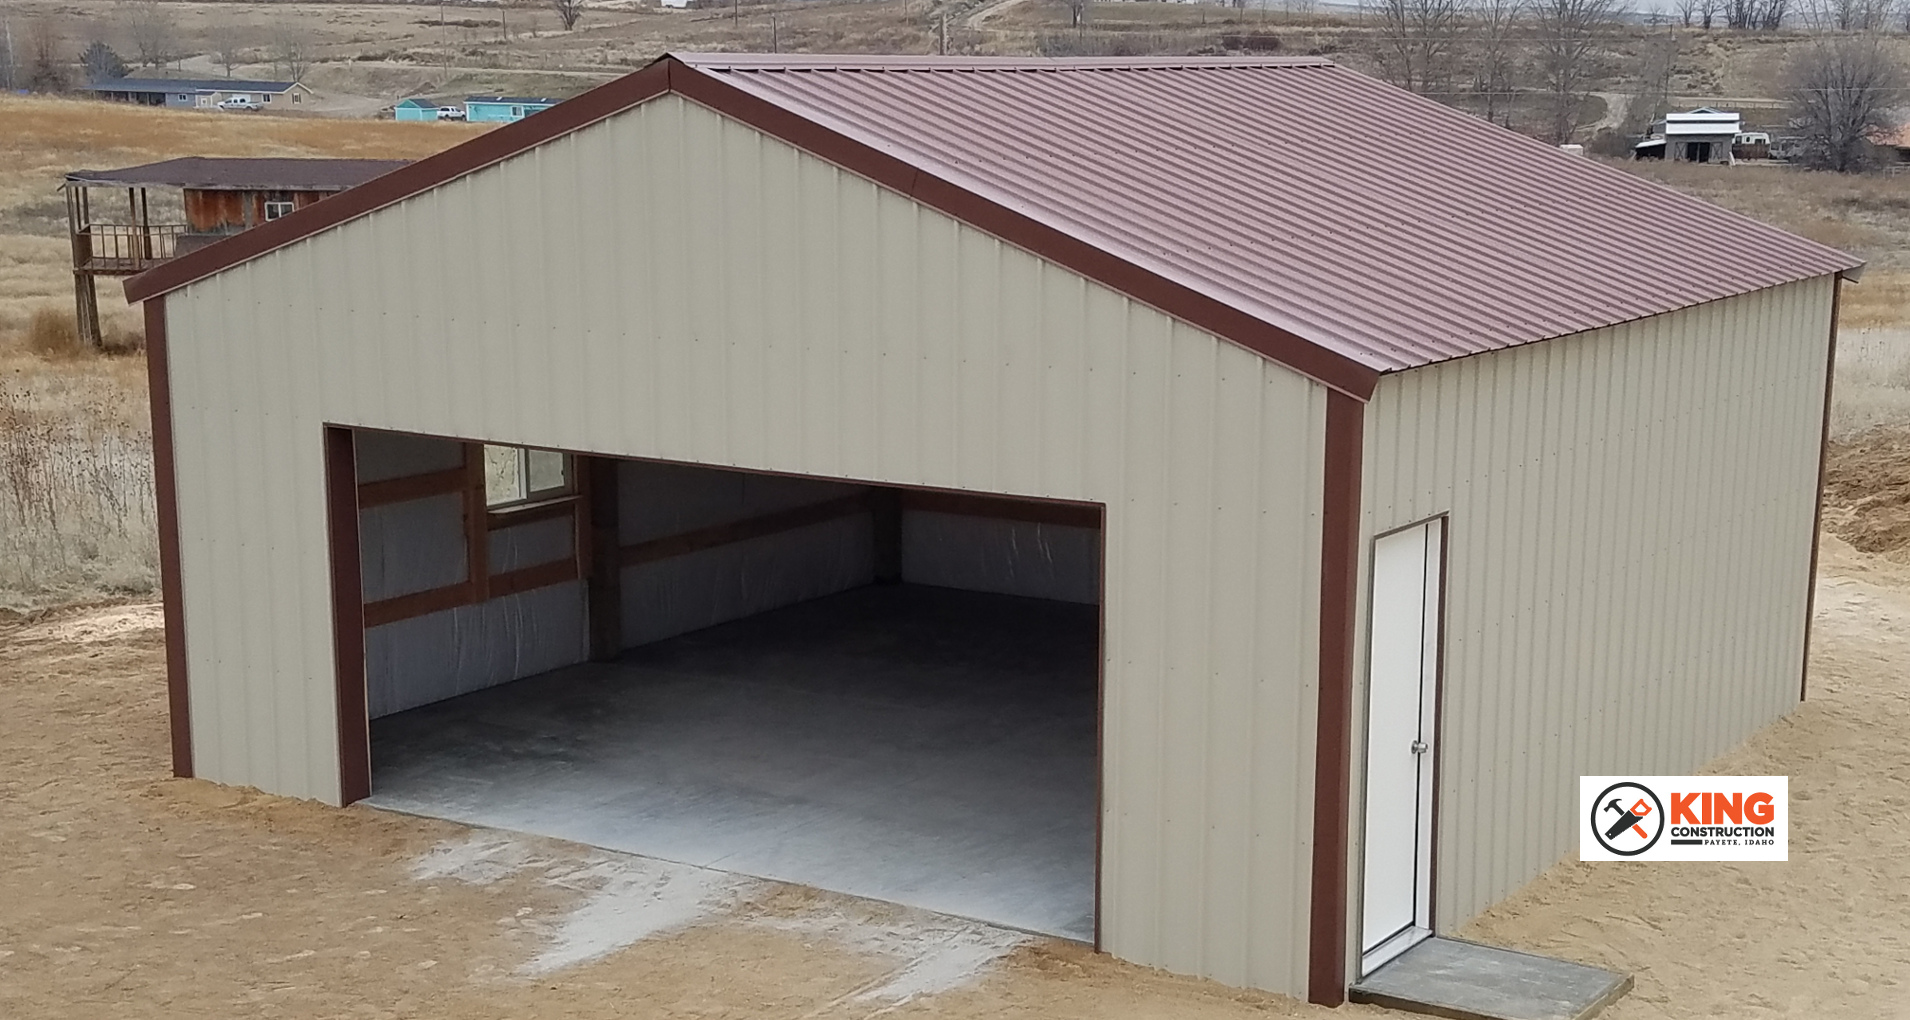 Pole Barn Hay Shed Tack Building Levi King Construction